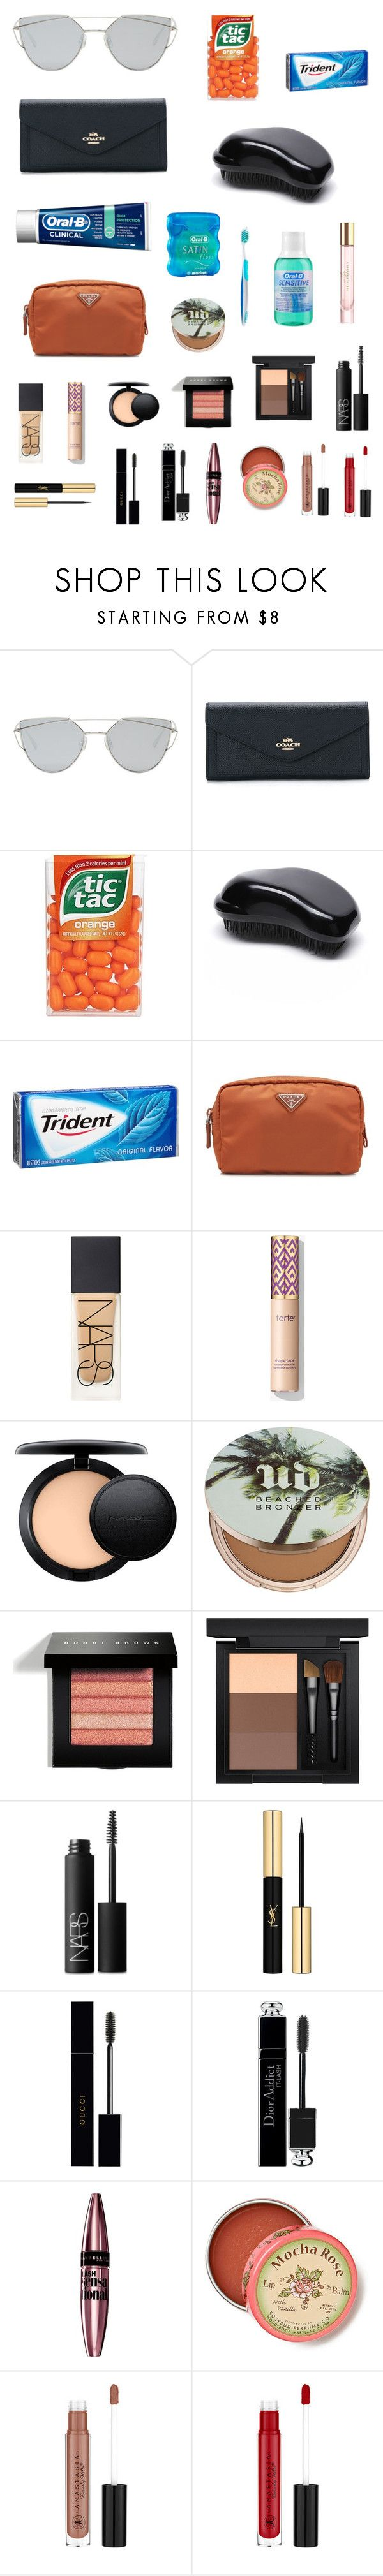 """Sem título #2294"" by clarinha13 ❤ liked on Polyvore featuring Gentle Monster, Coach, WithChic, Oral-B, Prada, NARS Cosmetics, MAC Cosmetics, Urban Decay, Bobbi Brown Cosmetics and Yves Saint Laurent"